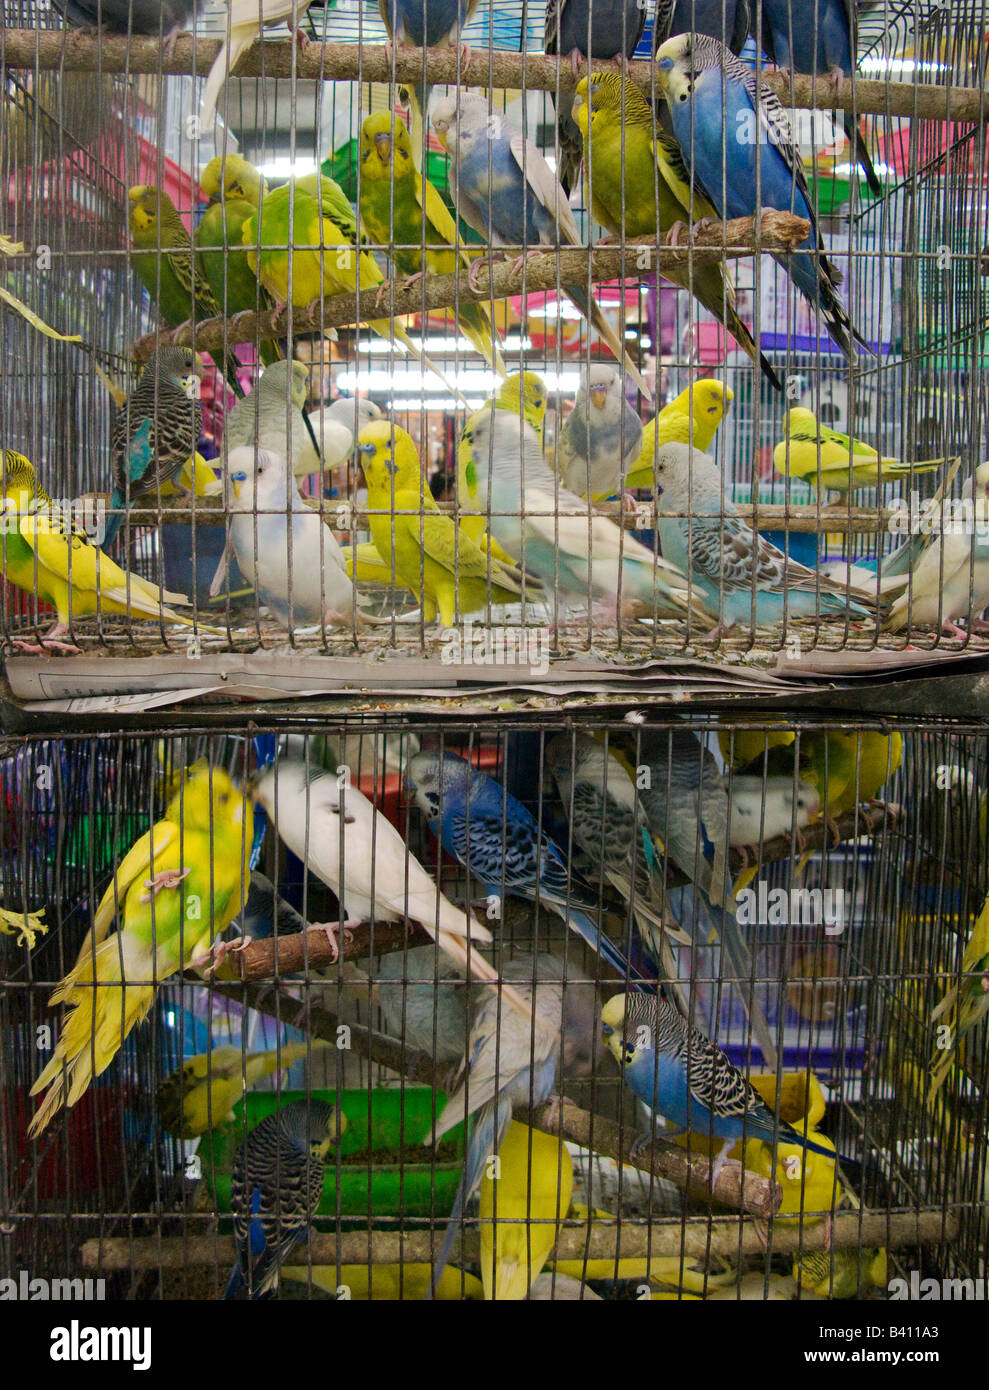 Caged birds for sale in the animal department of Bangkok's famous Chatuchak weekend market - Stock Image